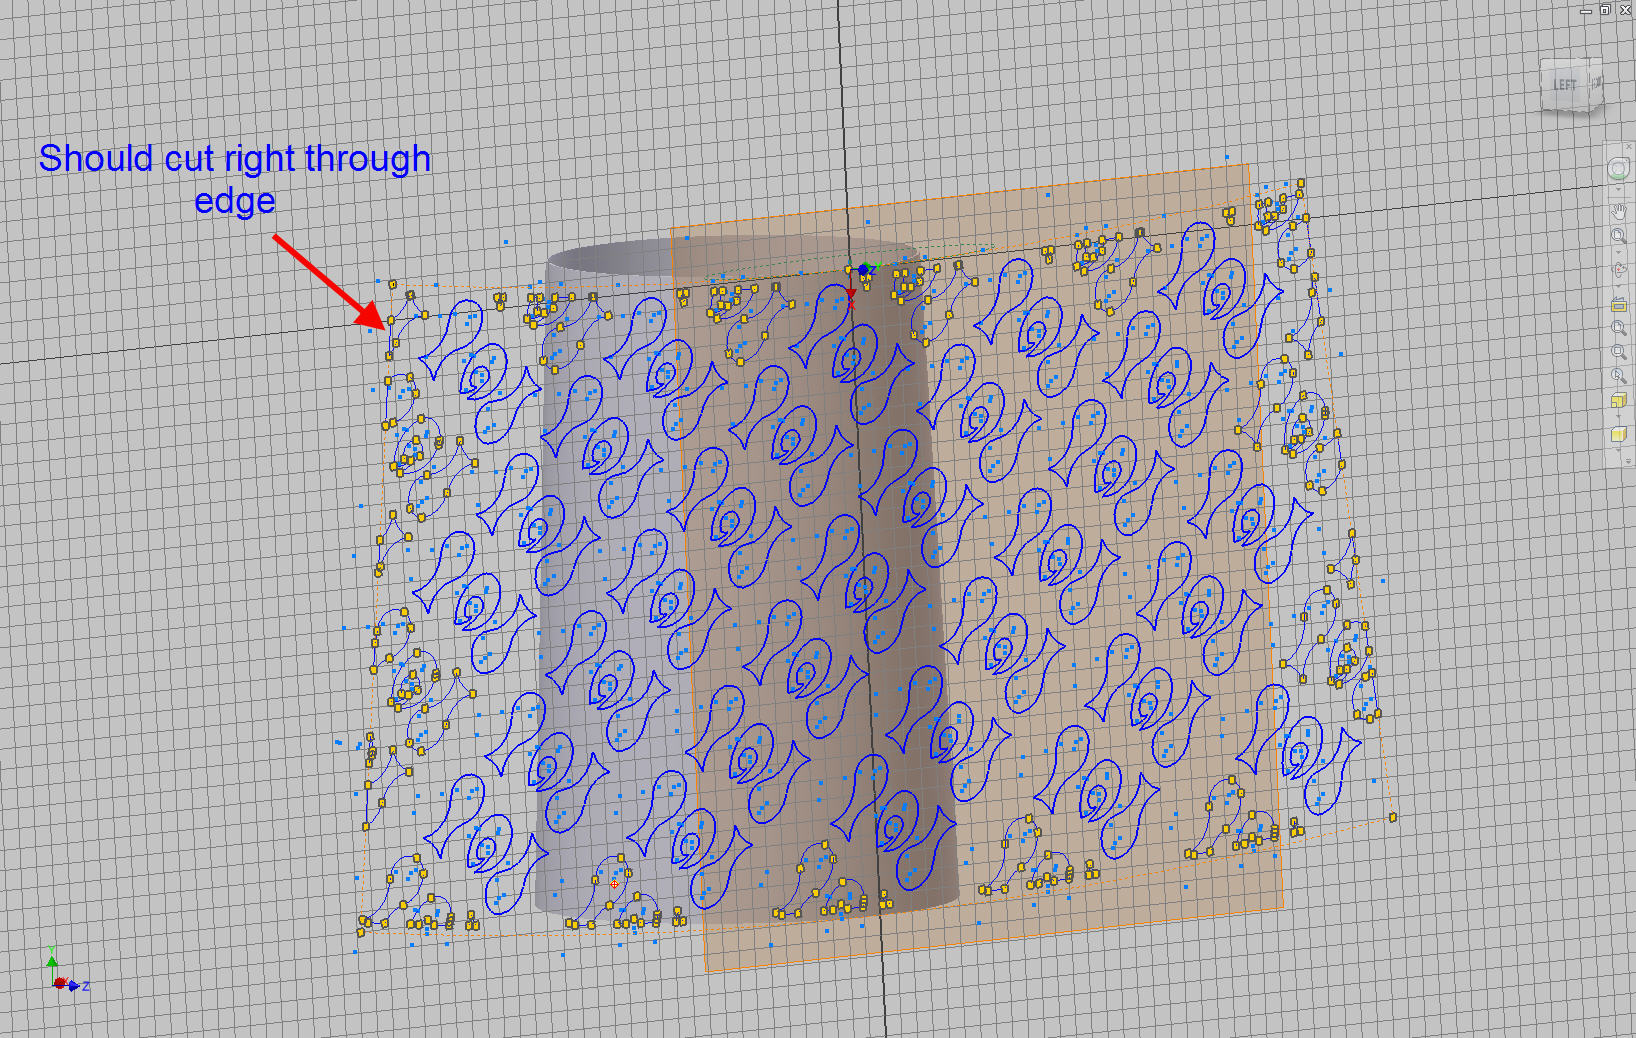 Emboss cut doesn't wrap all the way - Autodesk Community